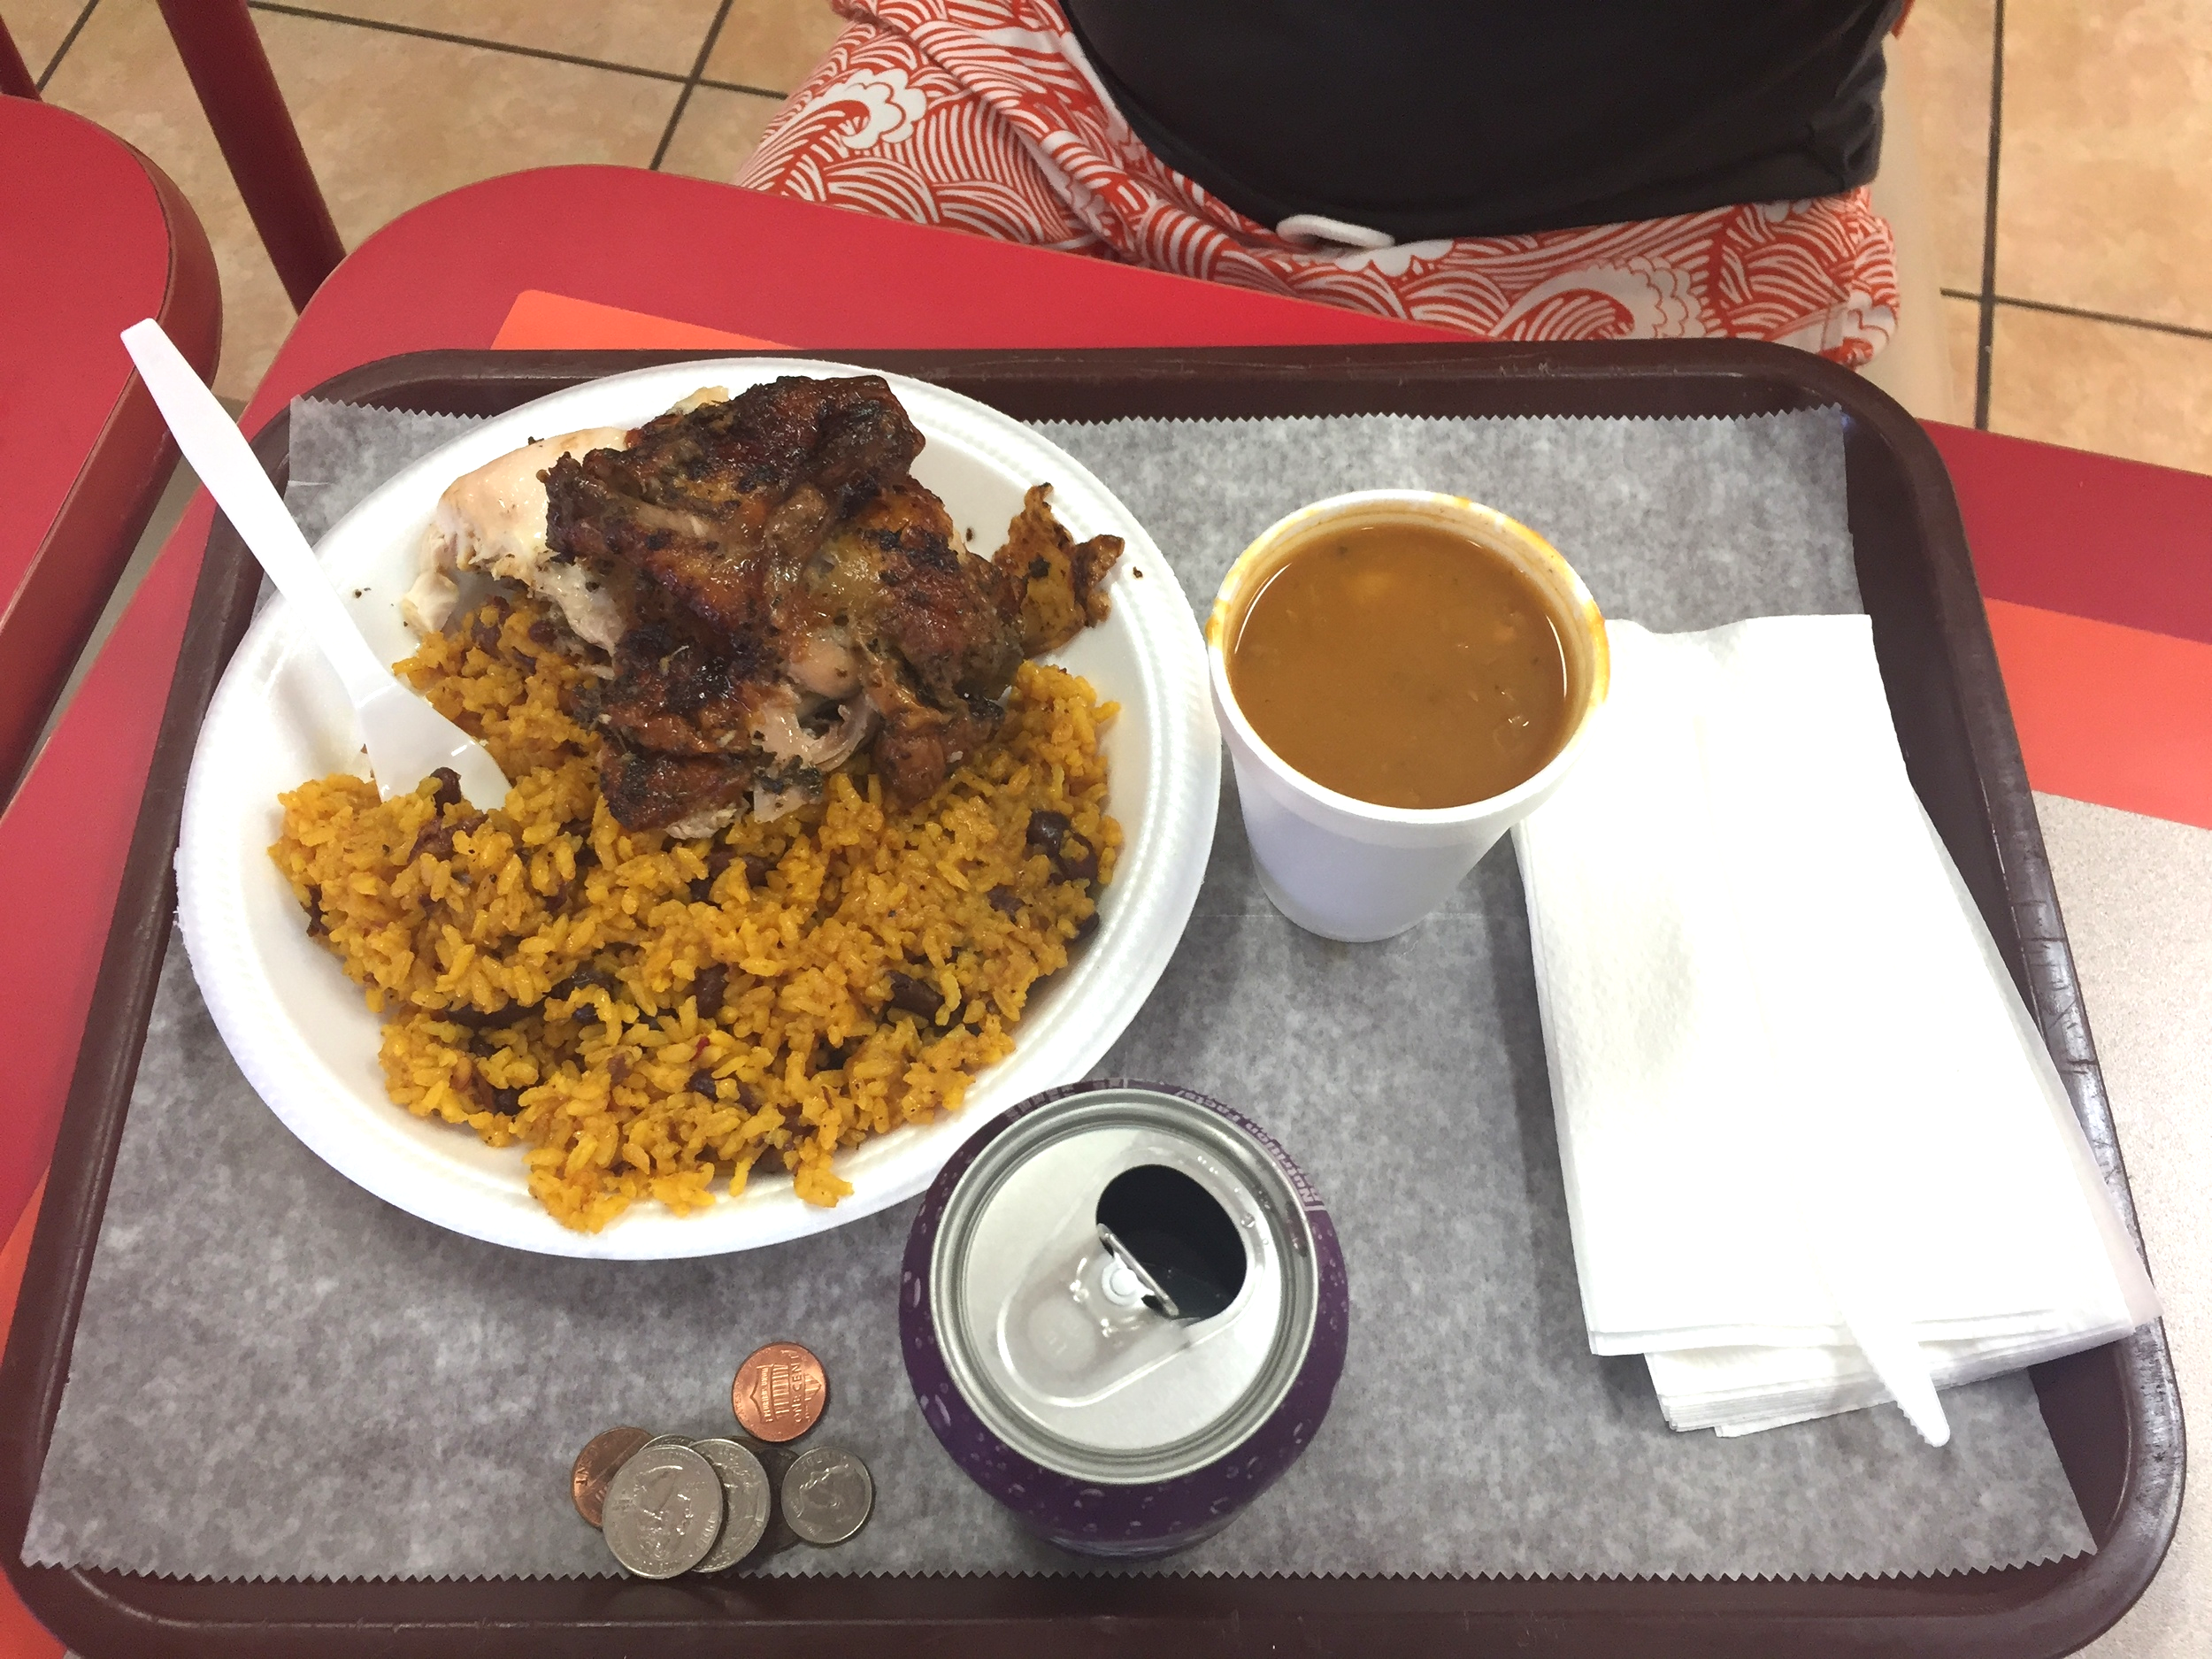 Half Chicken+ Rice+ Beans from La Familia Bakery in Rio Grande, PR. My platter went for about $5-6 and boy was it delicious!